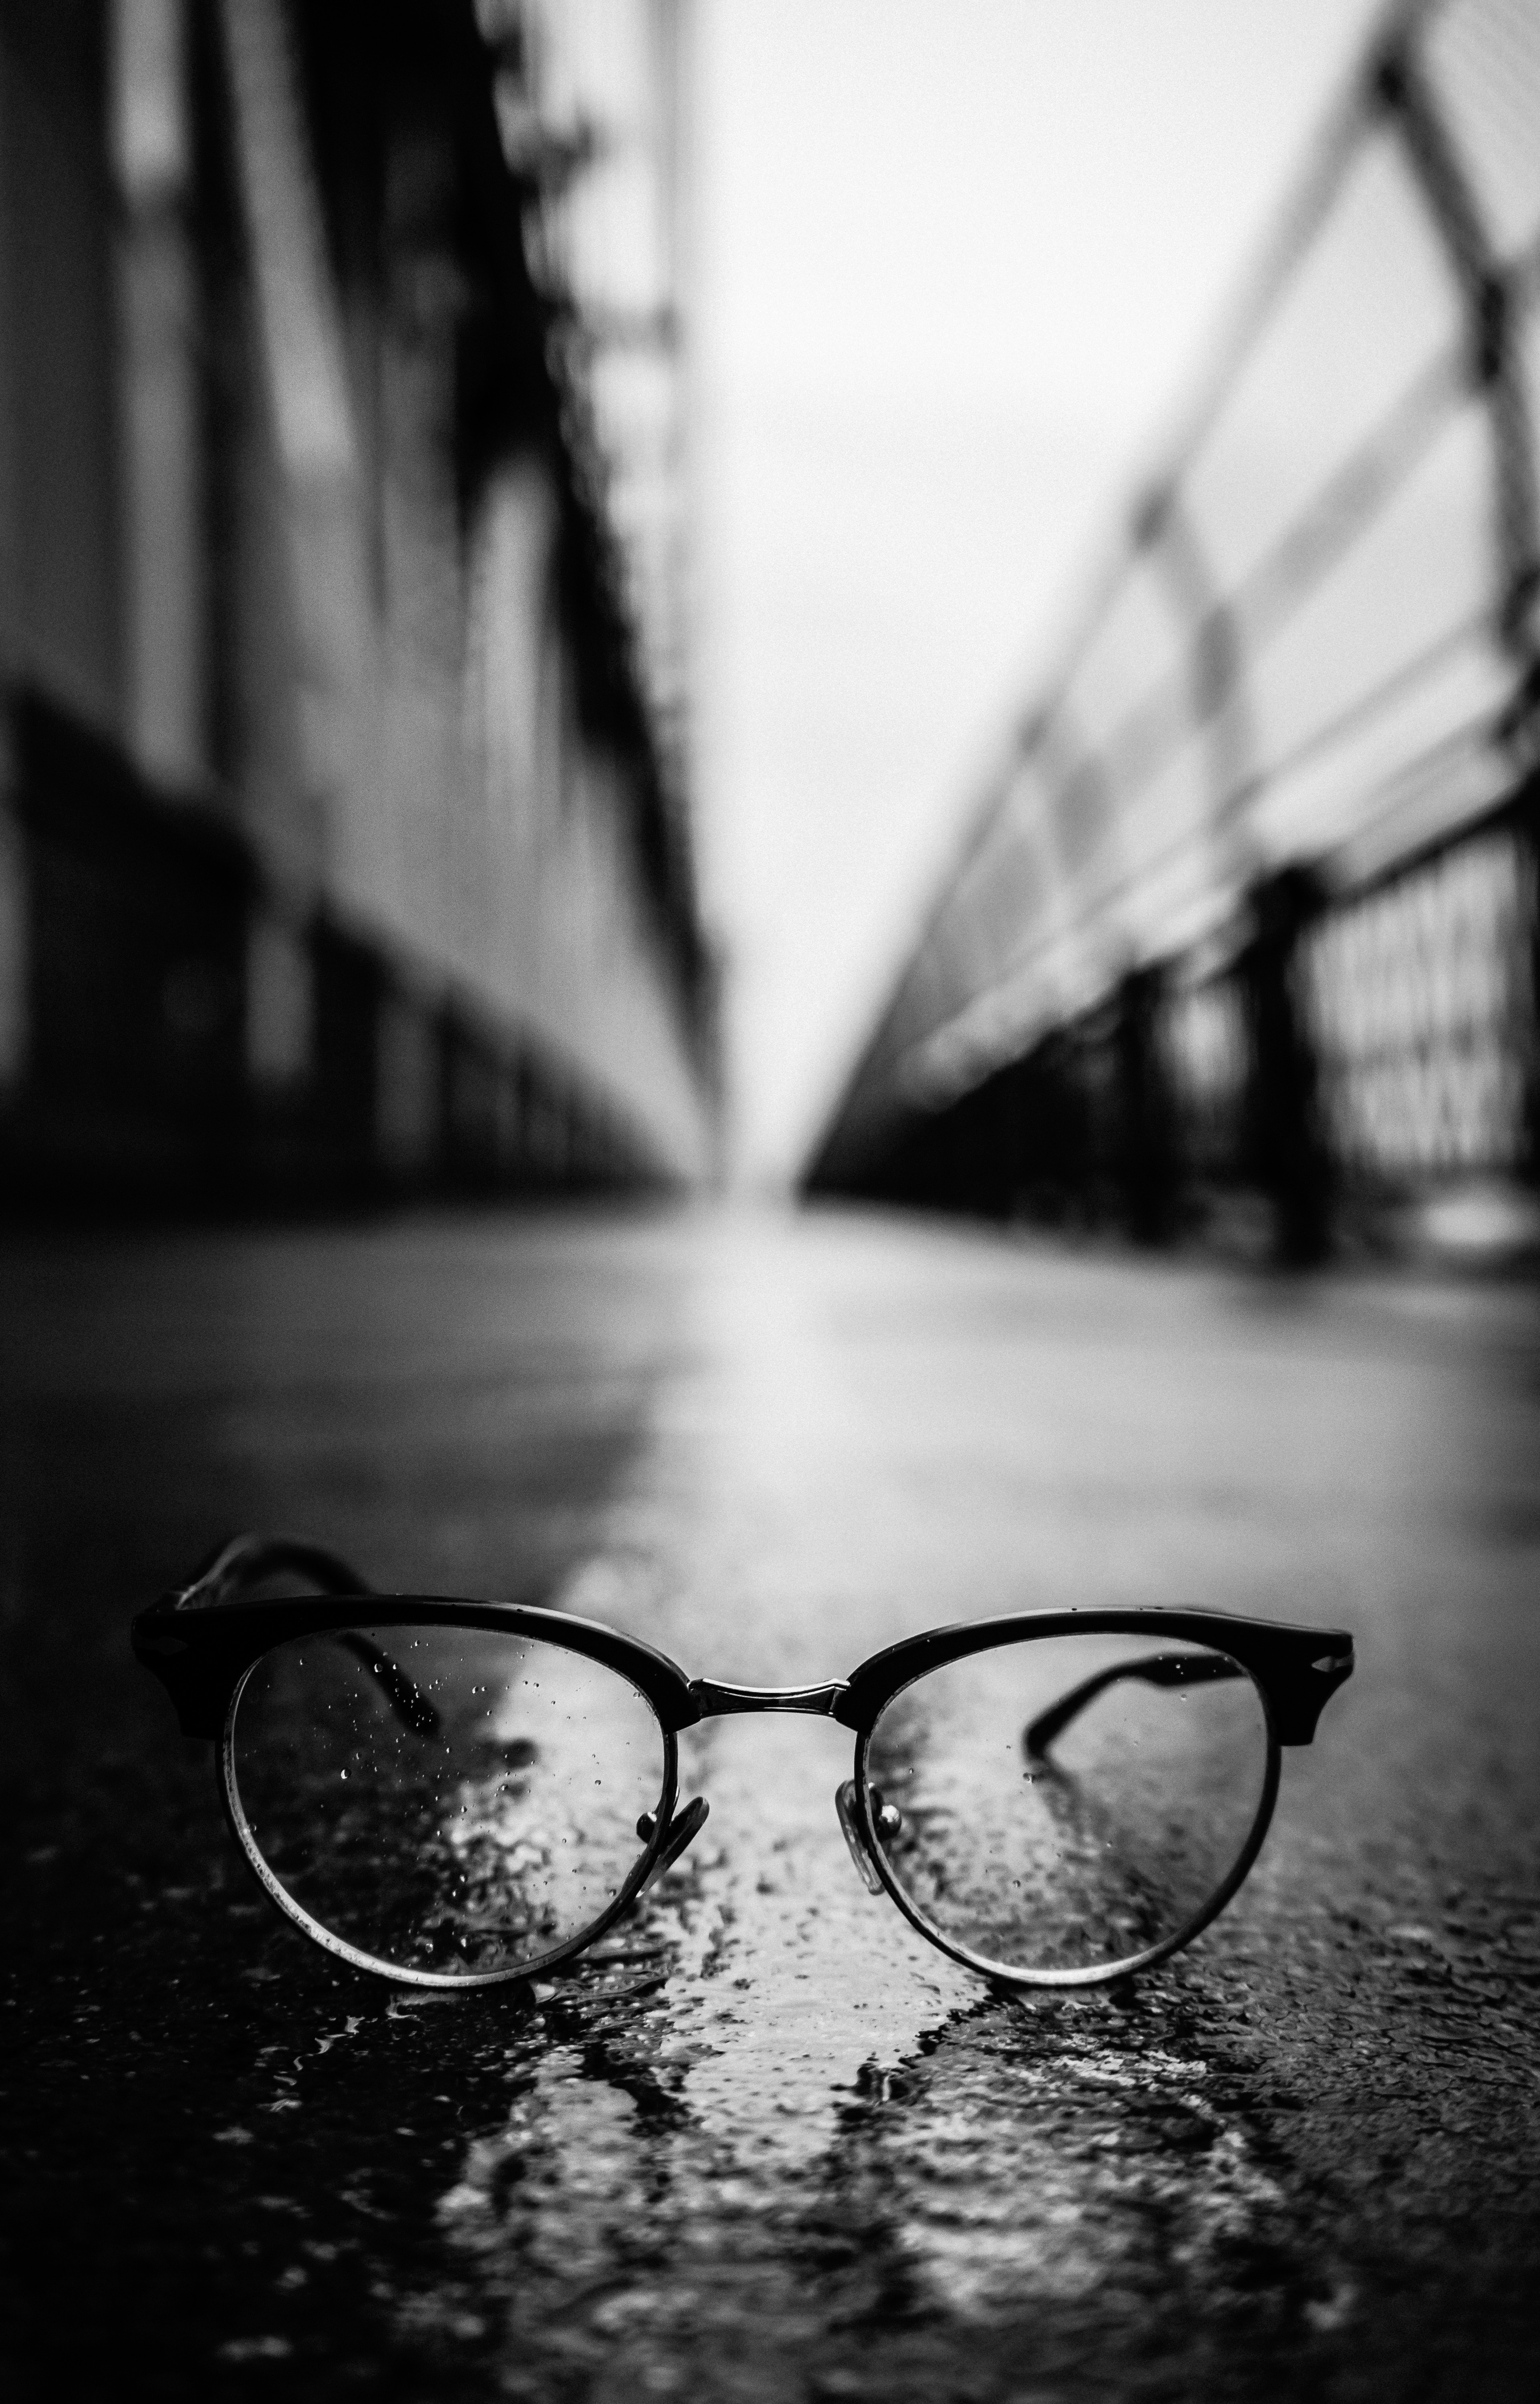 124166 download wallpaper Dark, Glasses, Spectacles, Bw, Chb, Close-Up screensavers and pictures for free